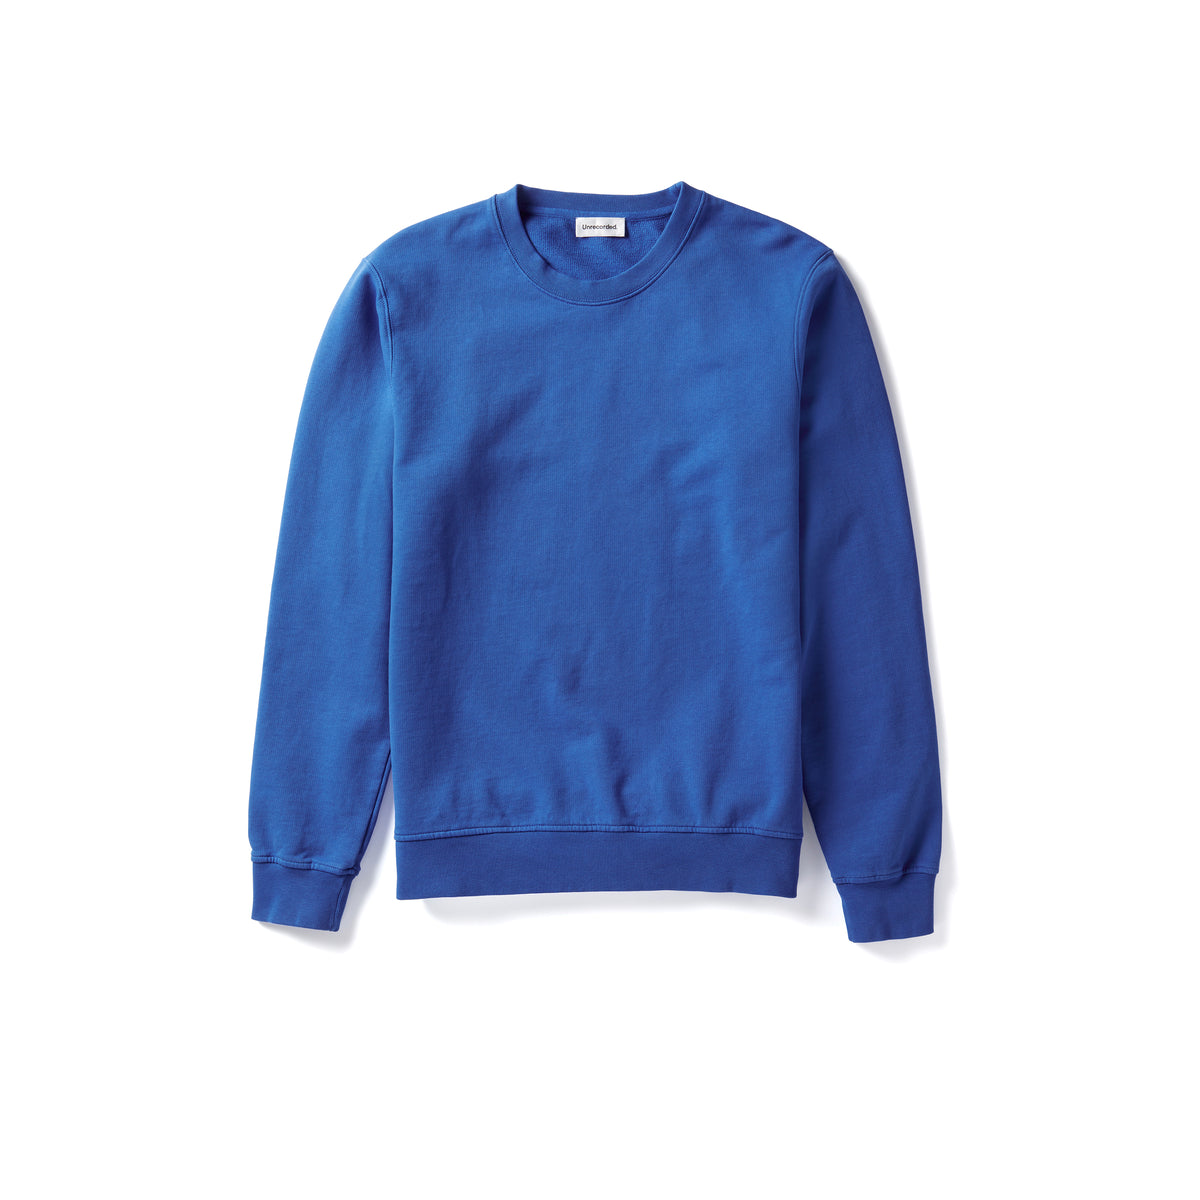 Sweater Blue - Unrecorded